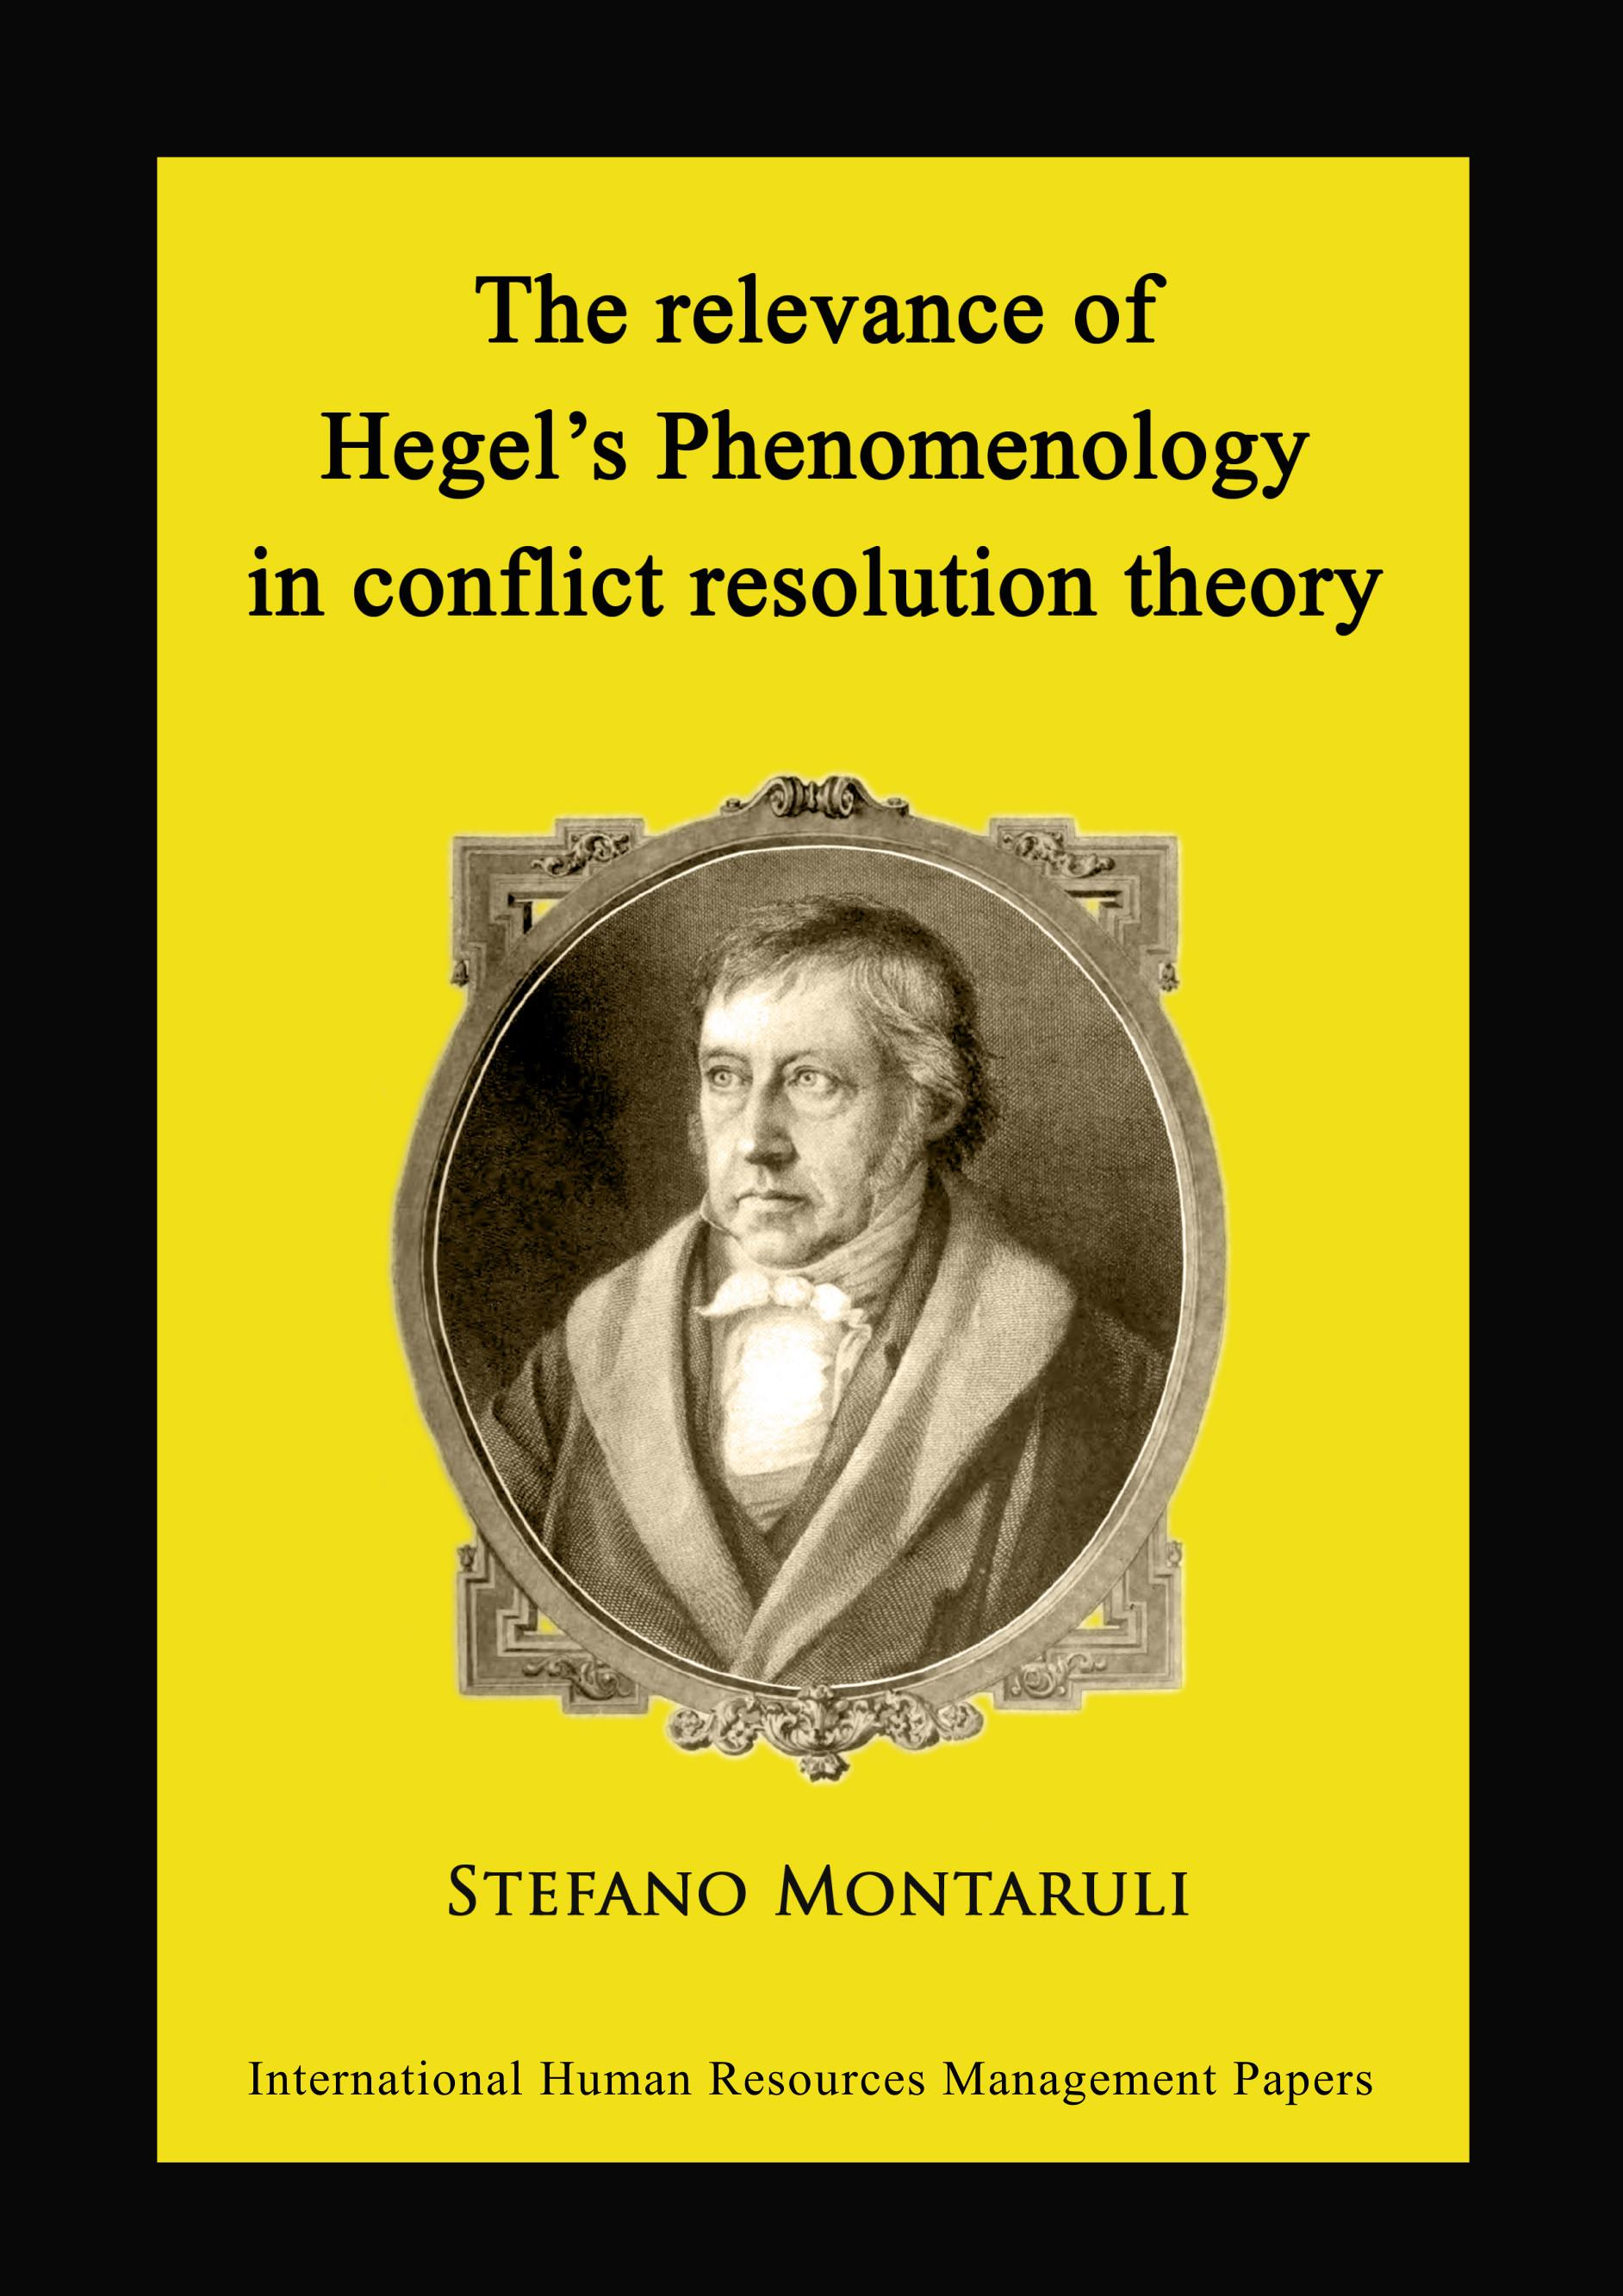 The relevance of Hegel's Phenomenology in conflict resolution theory